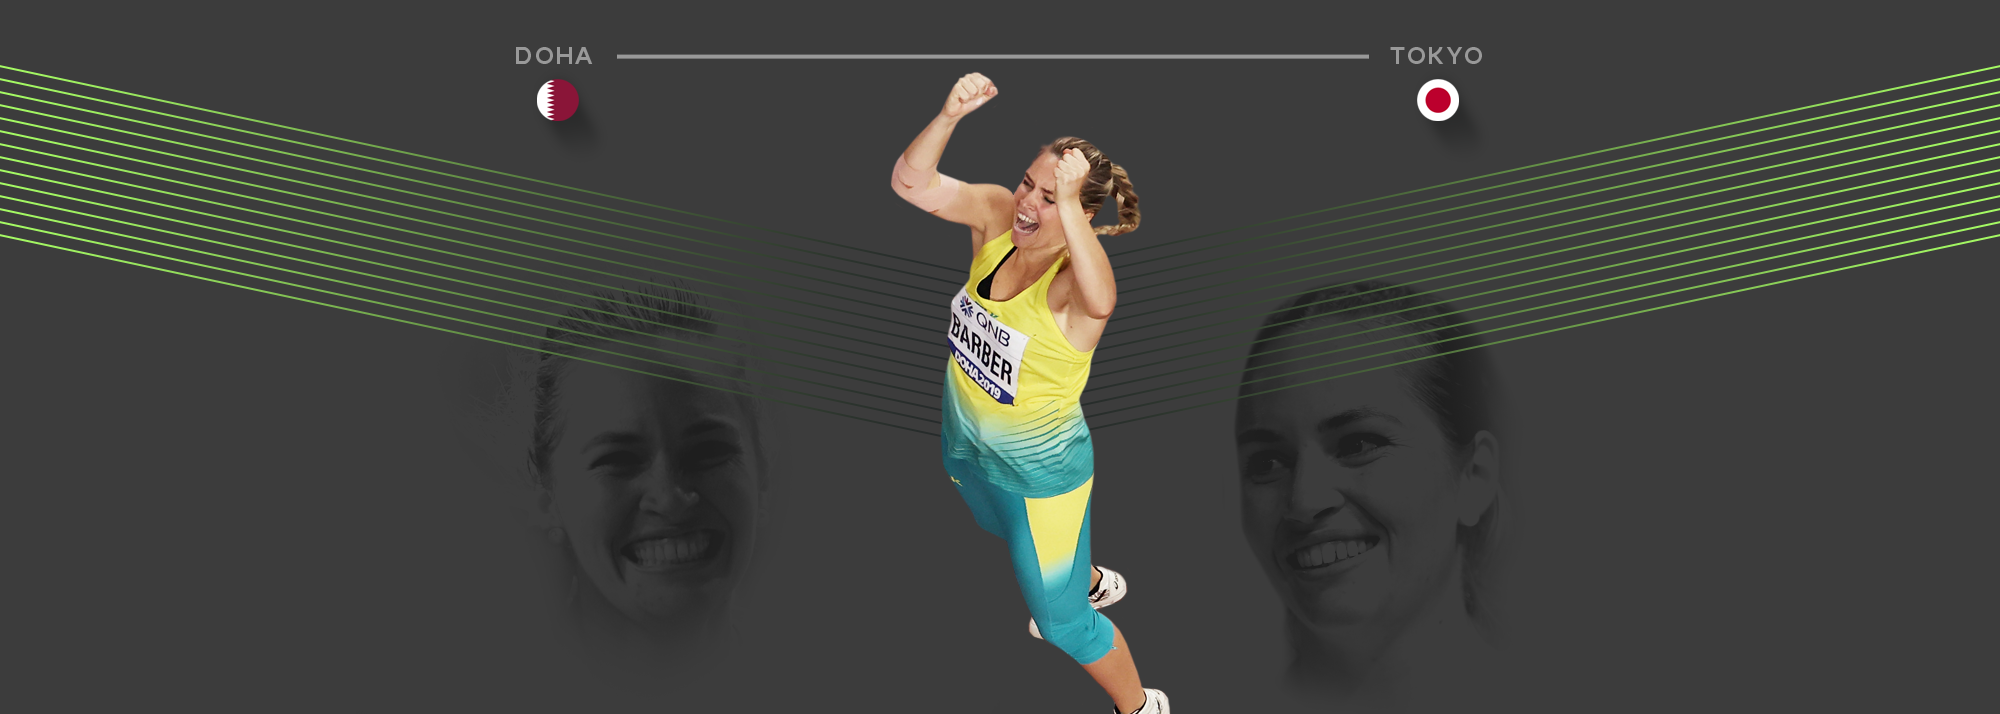 In the latest in our mini-series tracking the journey of athletes from the World Athletics Championships Doha 2019 through to the Tokyo Olympics, we focus on world javelin champion Kelsey-Lee Barber from Australia.